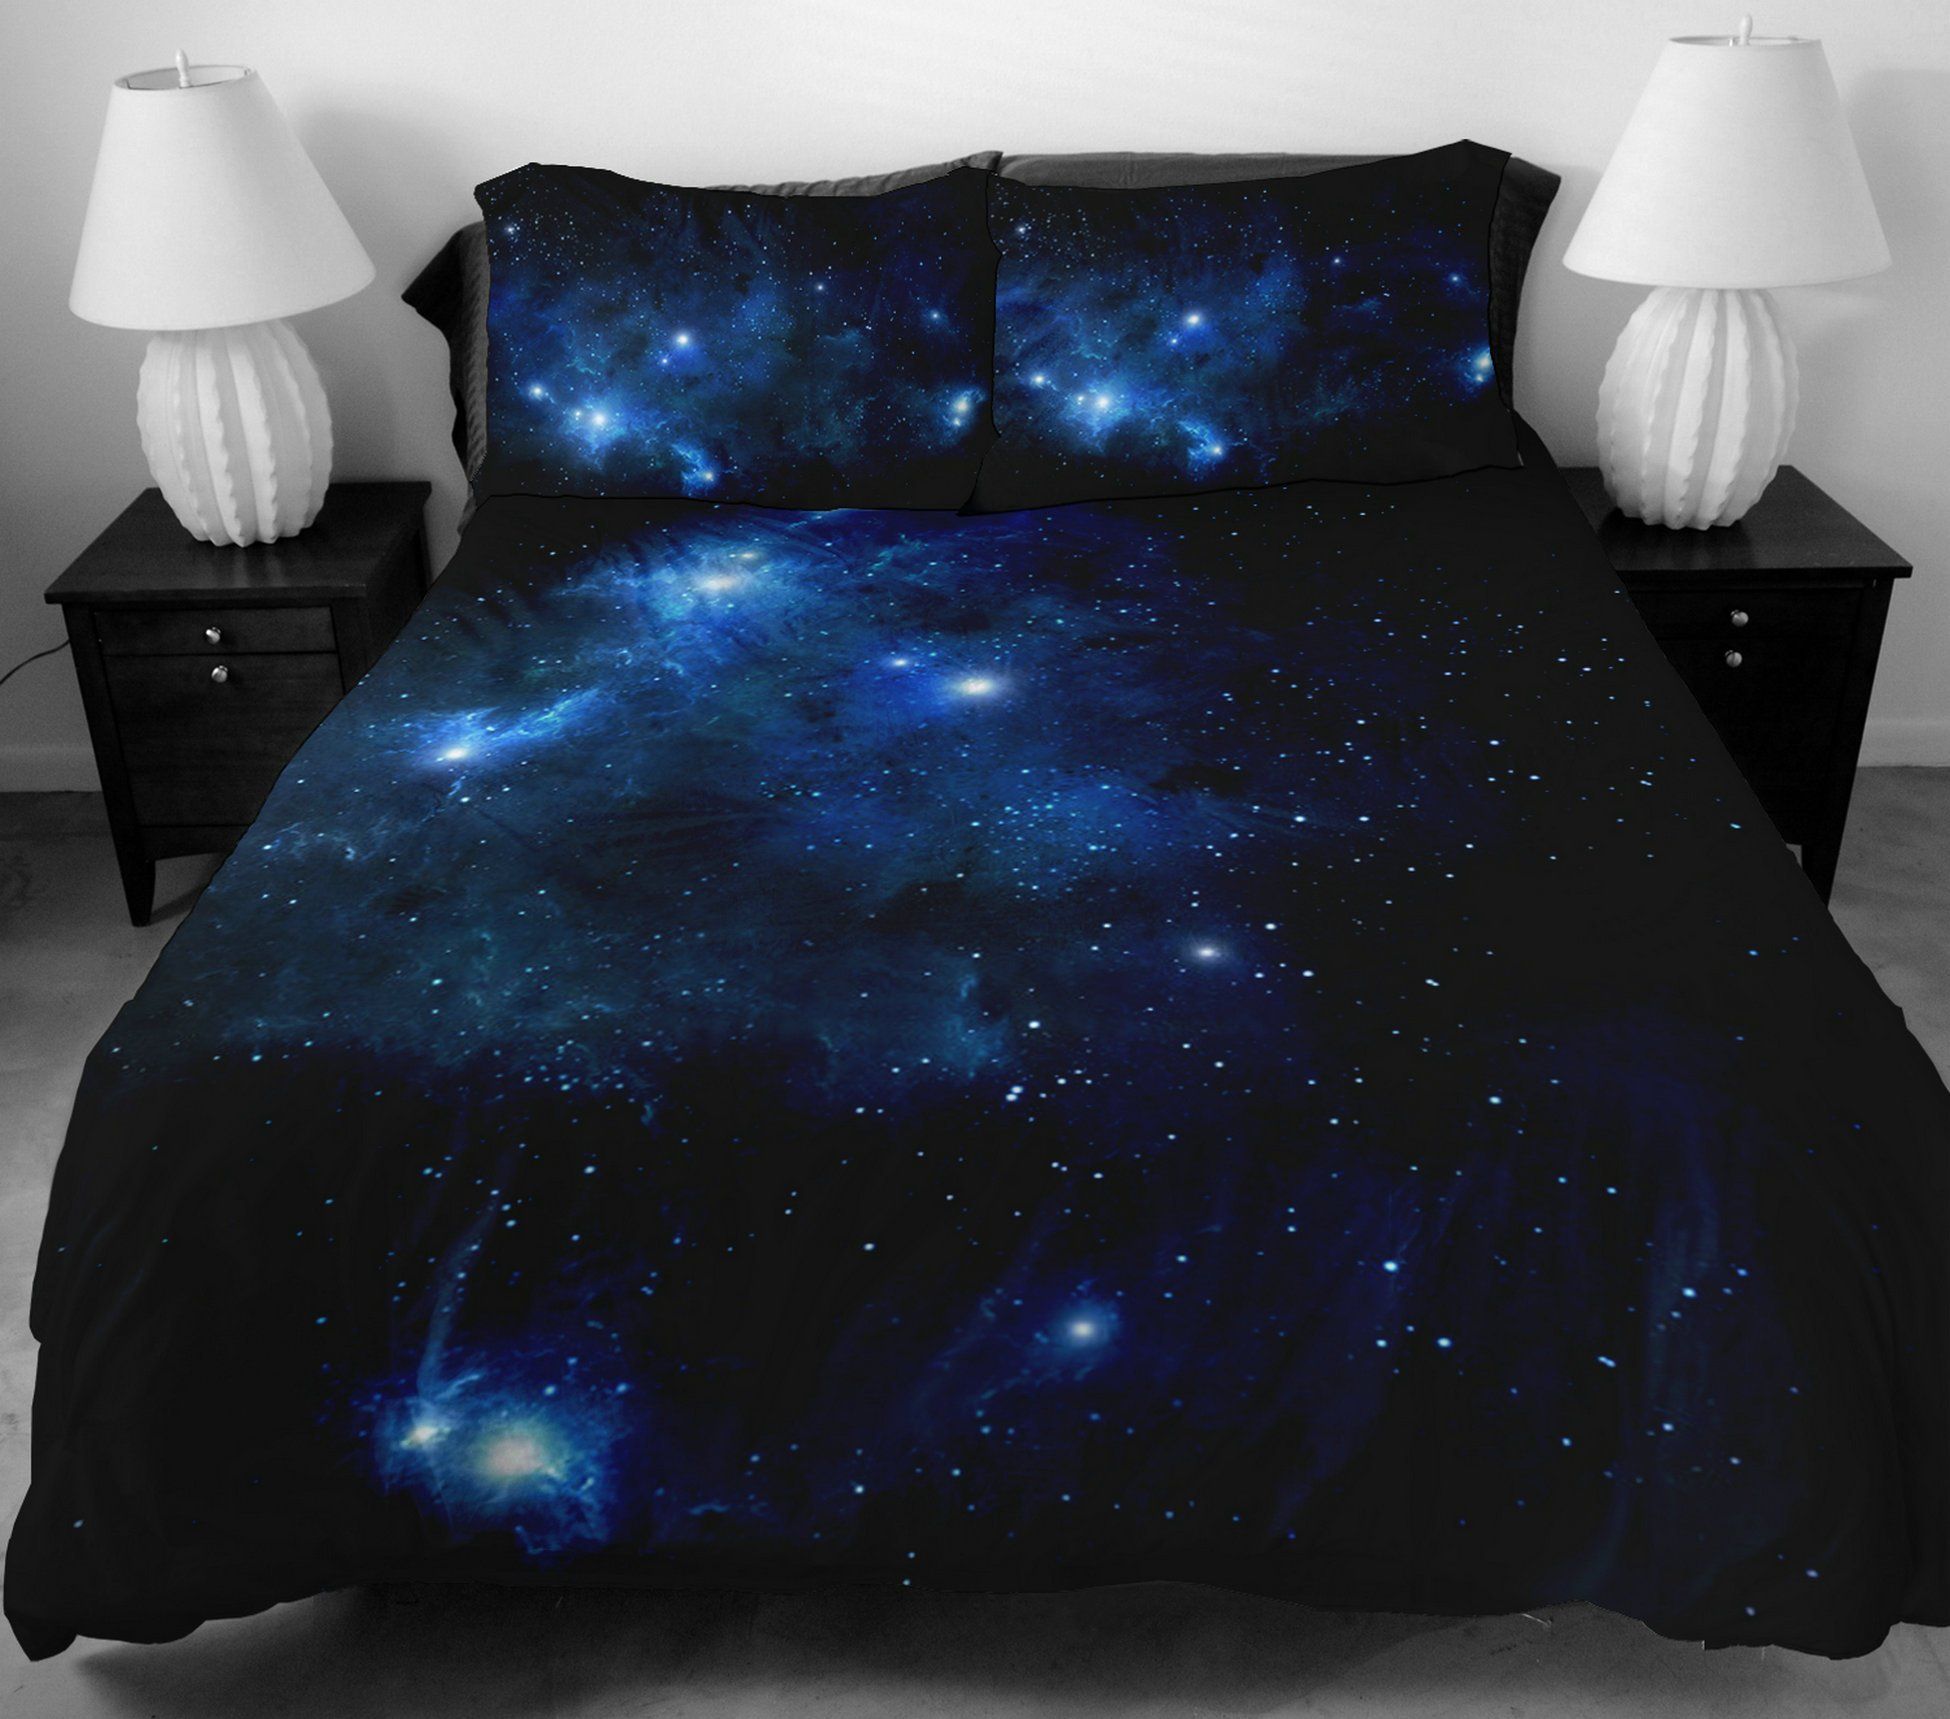 Anlye Boys Bedding Set 2 Sides Printing The Navy Blue Star Duvet Covers With Matching design 2 Pillow Cases For Boys Home Decorating Ideas King